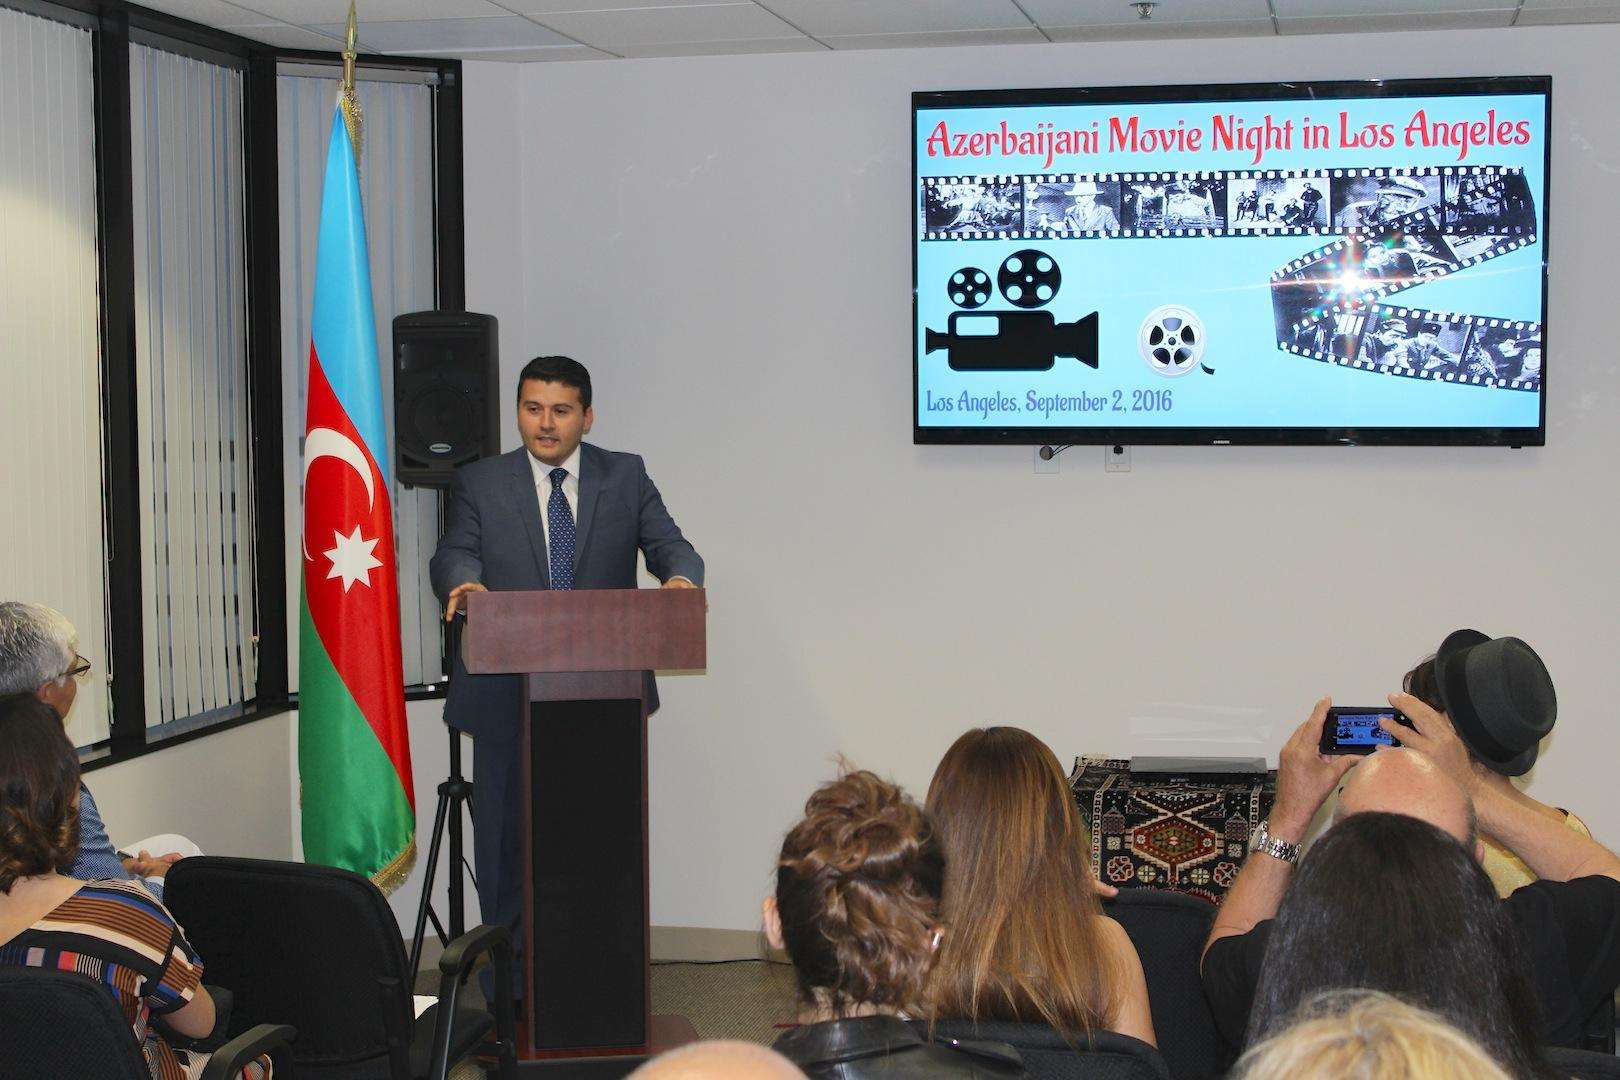 'Azerbaijani Movie Night' series launched in Los Angeles